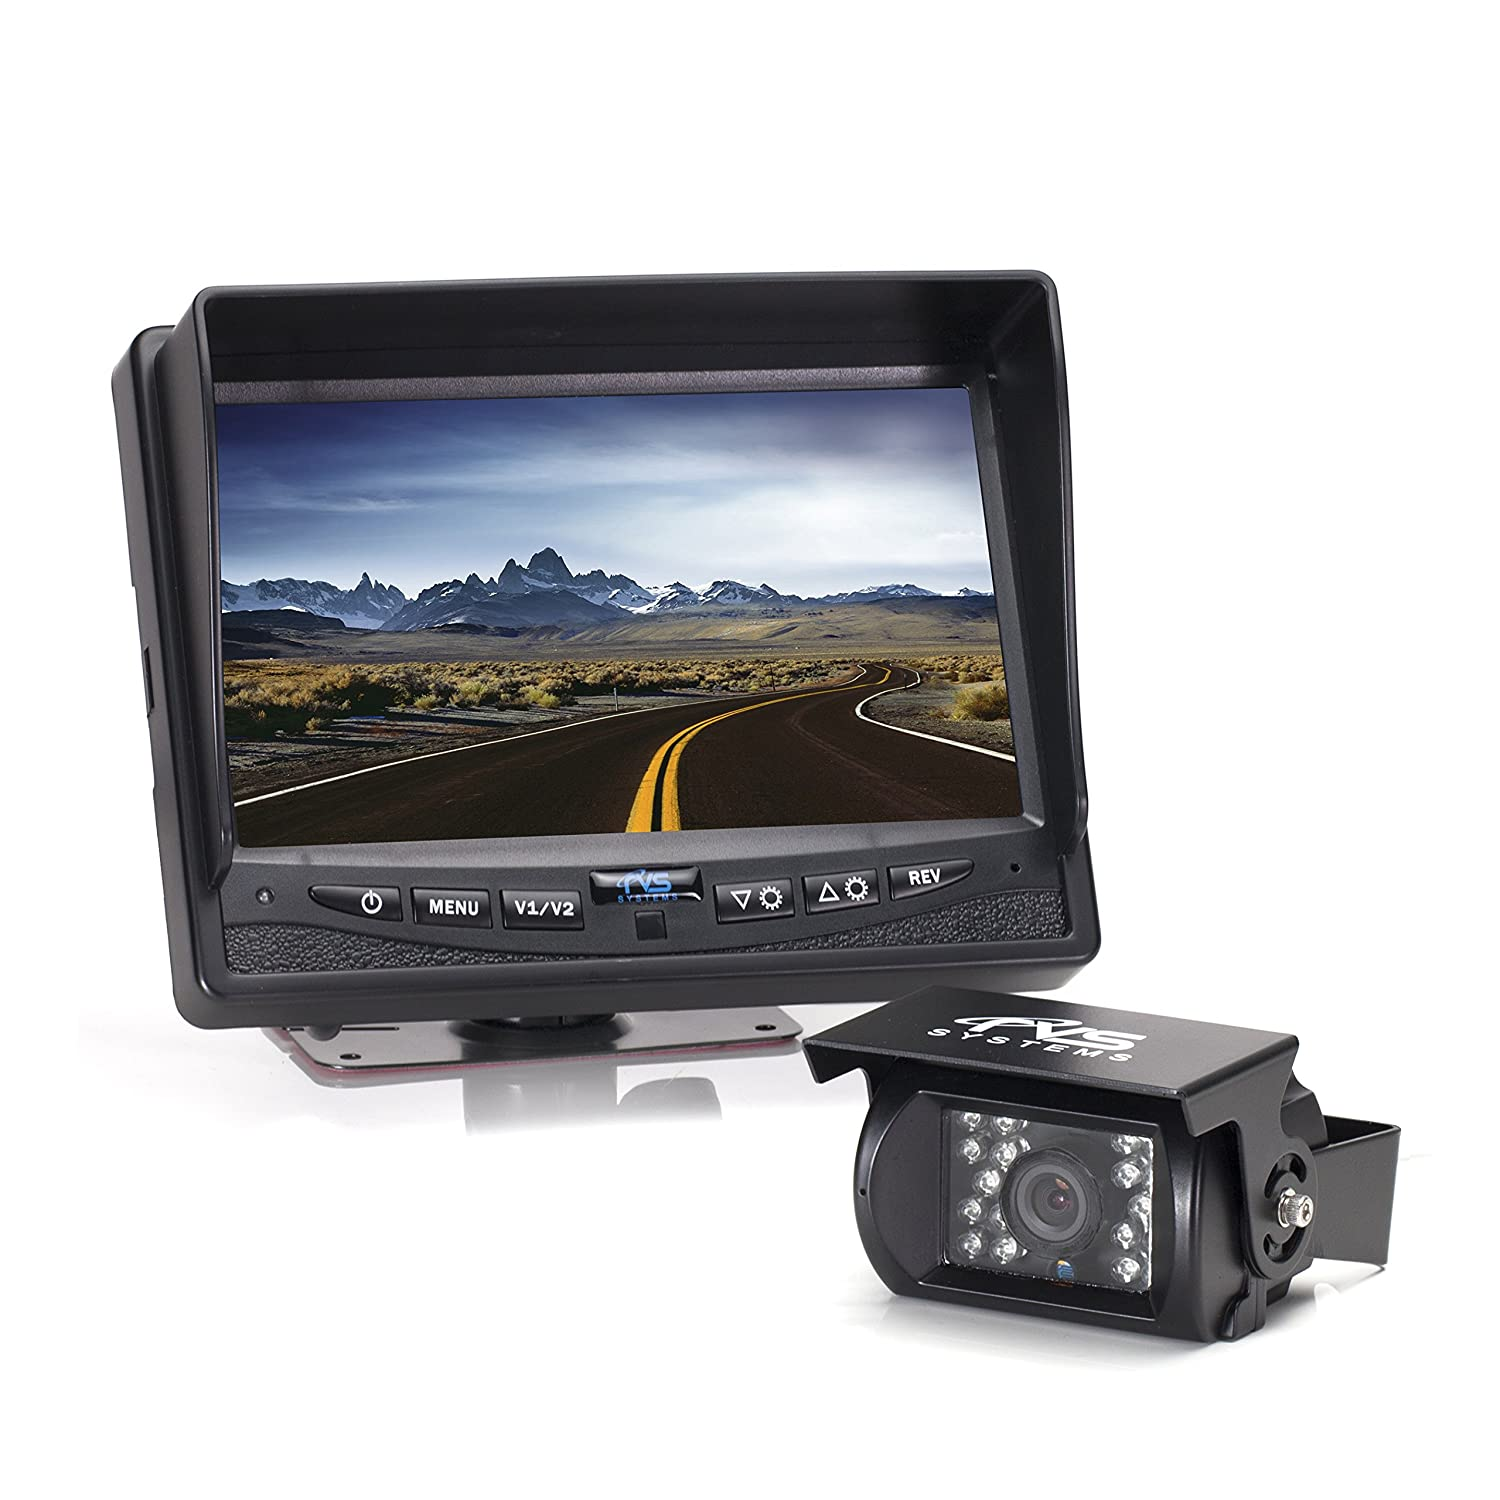 Rear View Safety Backup Camera System with 7' Display (Black) RVS-770613 Rear View Safety Inc